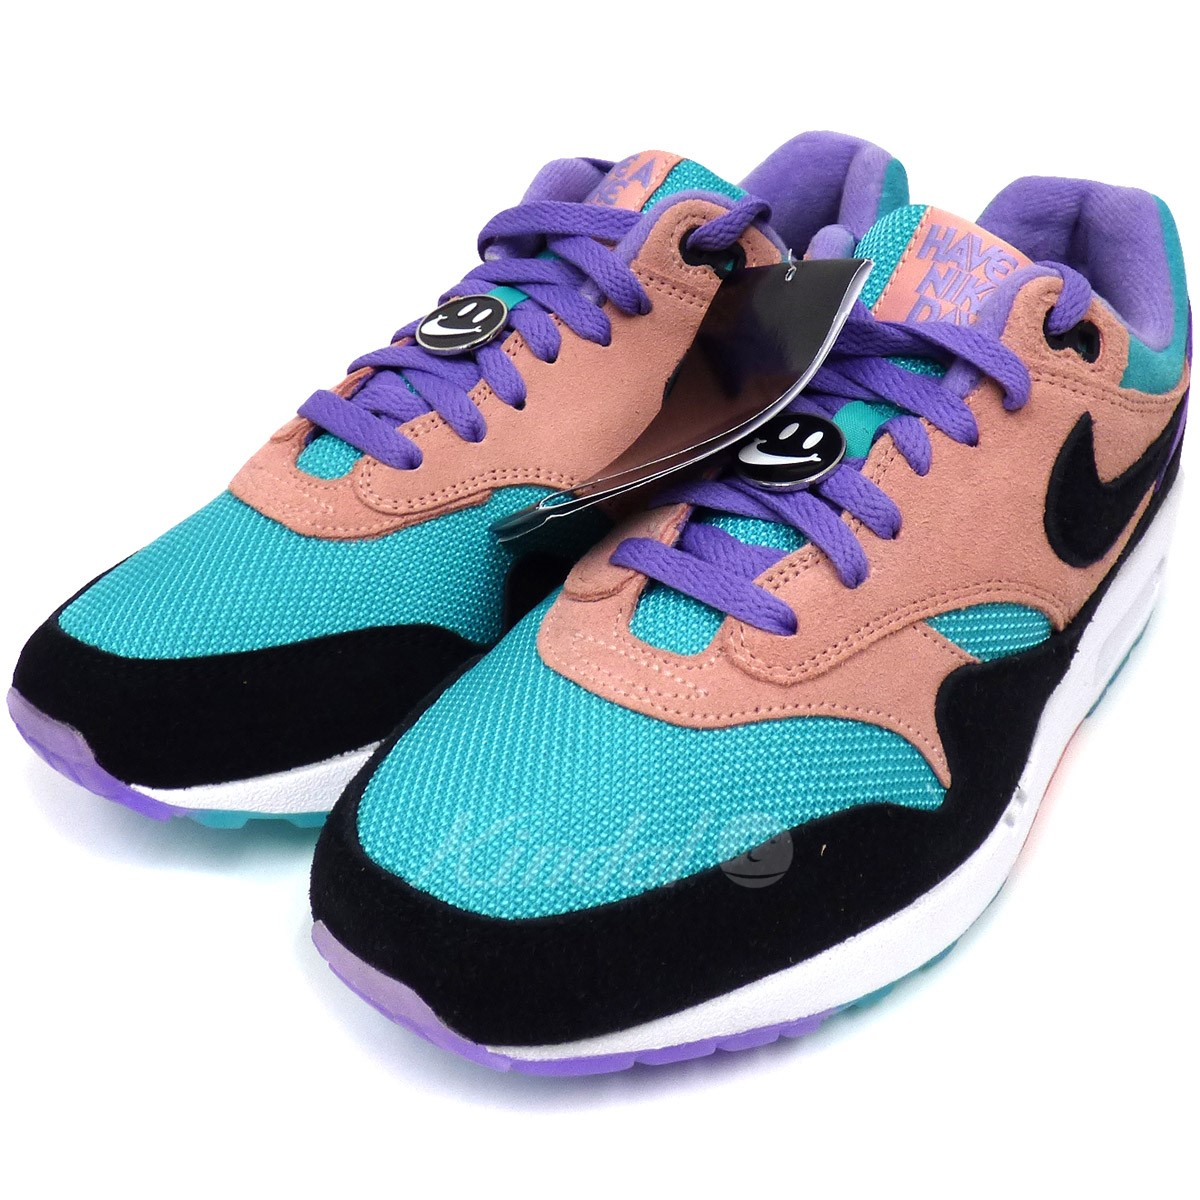 new images of clearance sale 2018 shoes NIKE AIR MAX1 ND Have a NIke Day Air Max 1 sneakers multicolored size:  US9(27cm) (Nike)